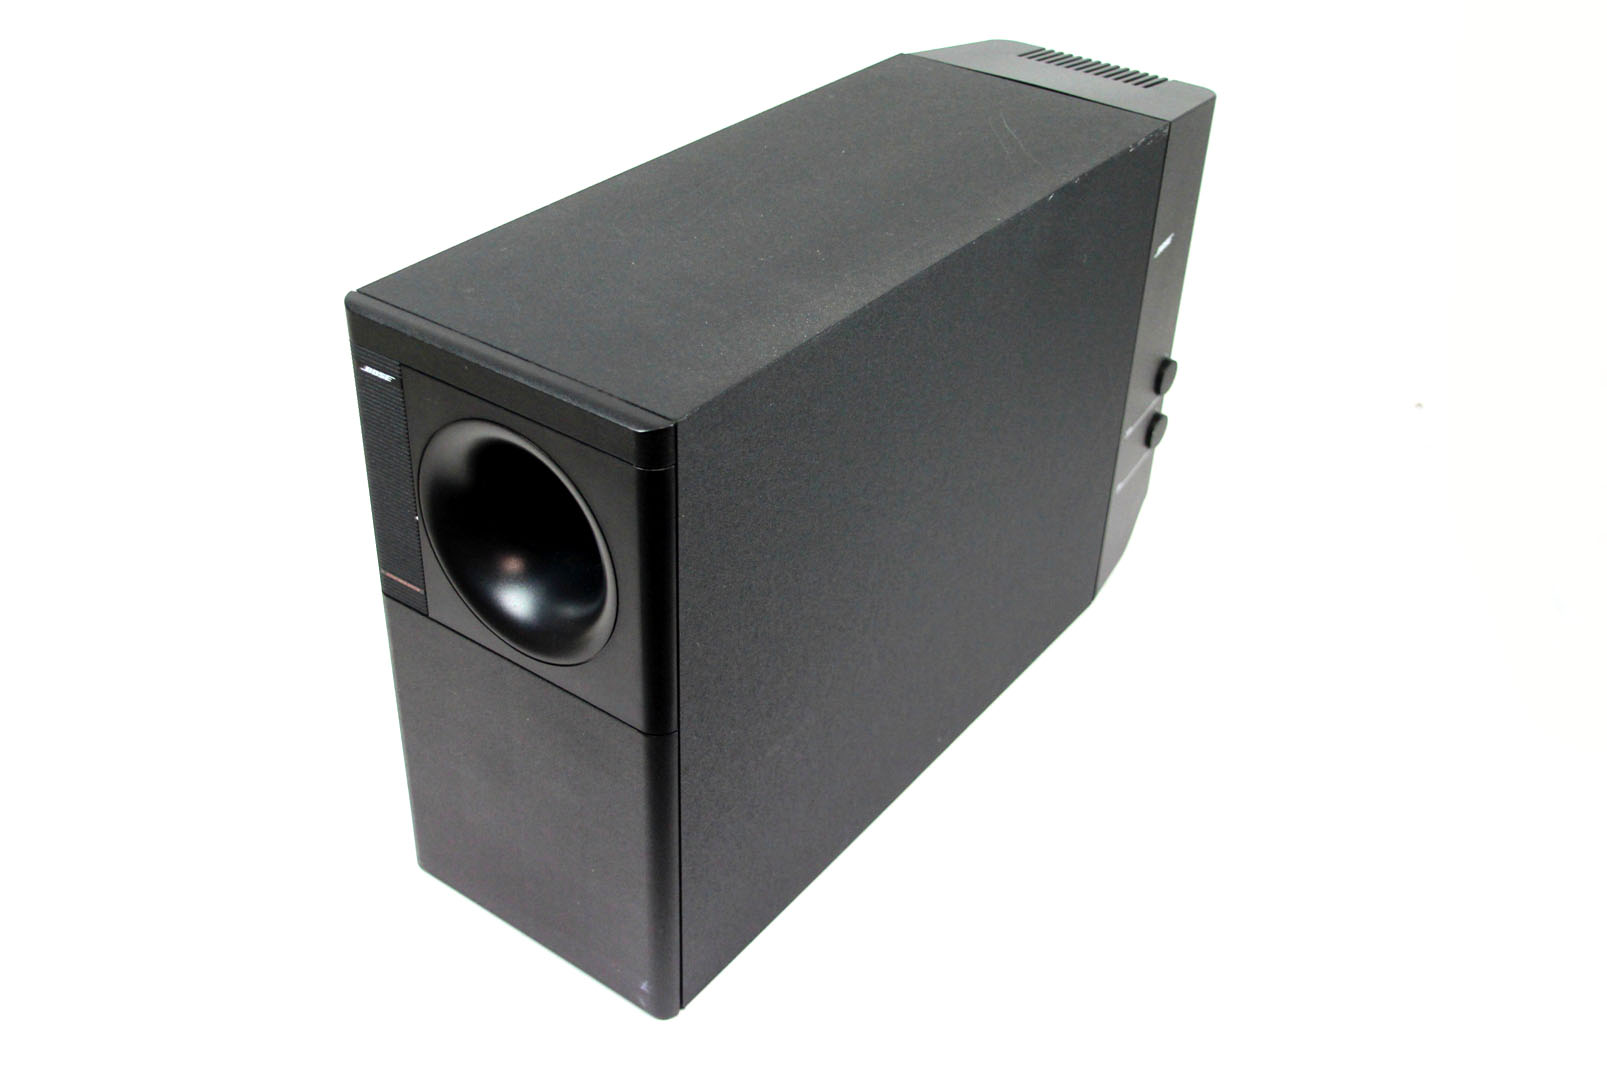 bose aktiv subwoofer bassbox lautsprecher powered acoustimass 9 speaker system ebay. Black Bedroom Furniture Sets. Home Design Ideas